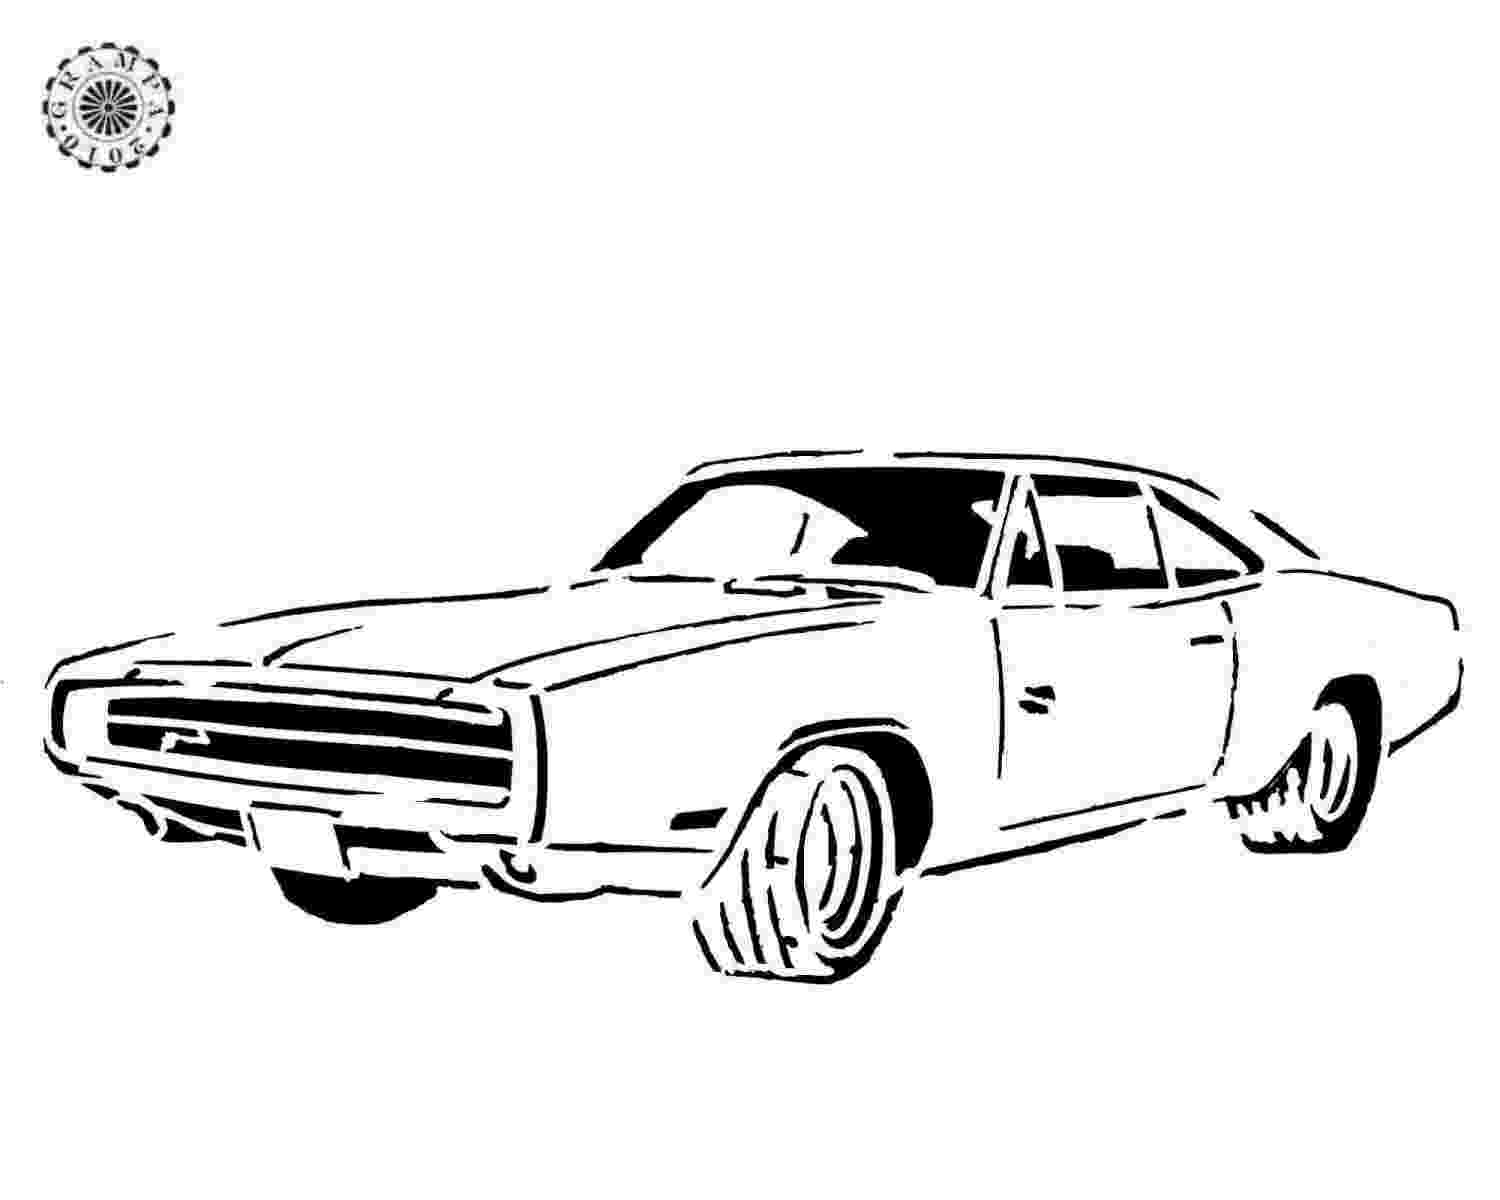 dodge charger coloring sheets dodge hemi charger 1968 coloring page coloring pages coloring sheets dodge charger